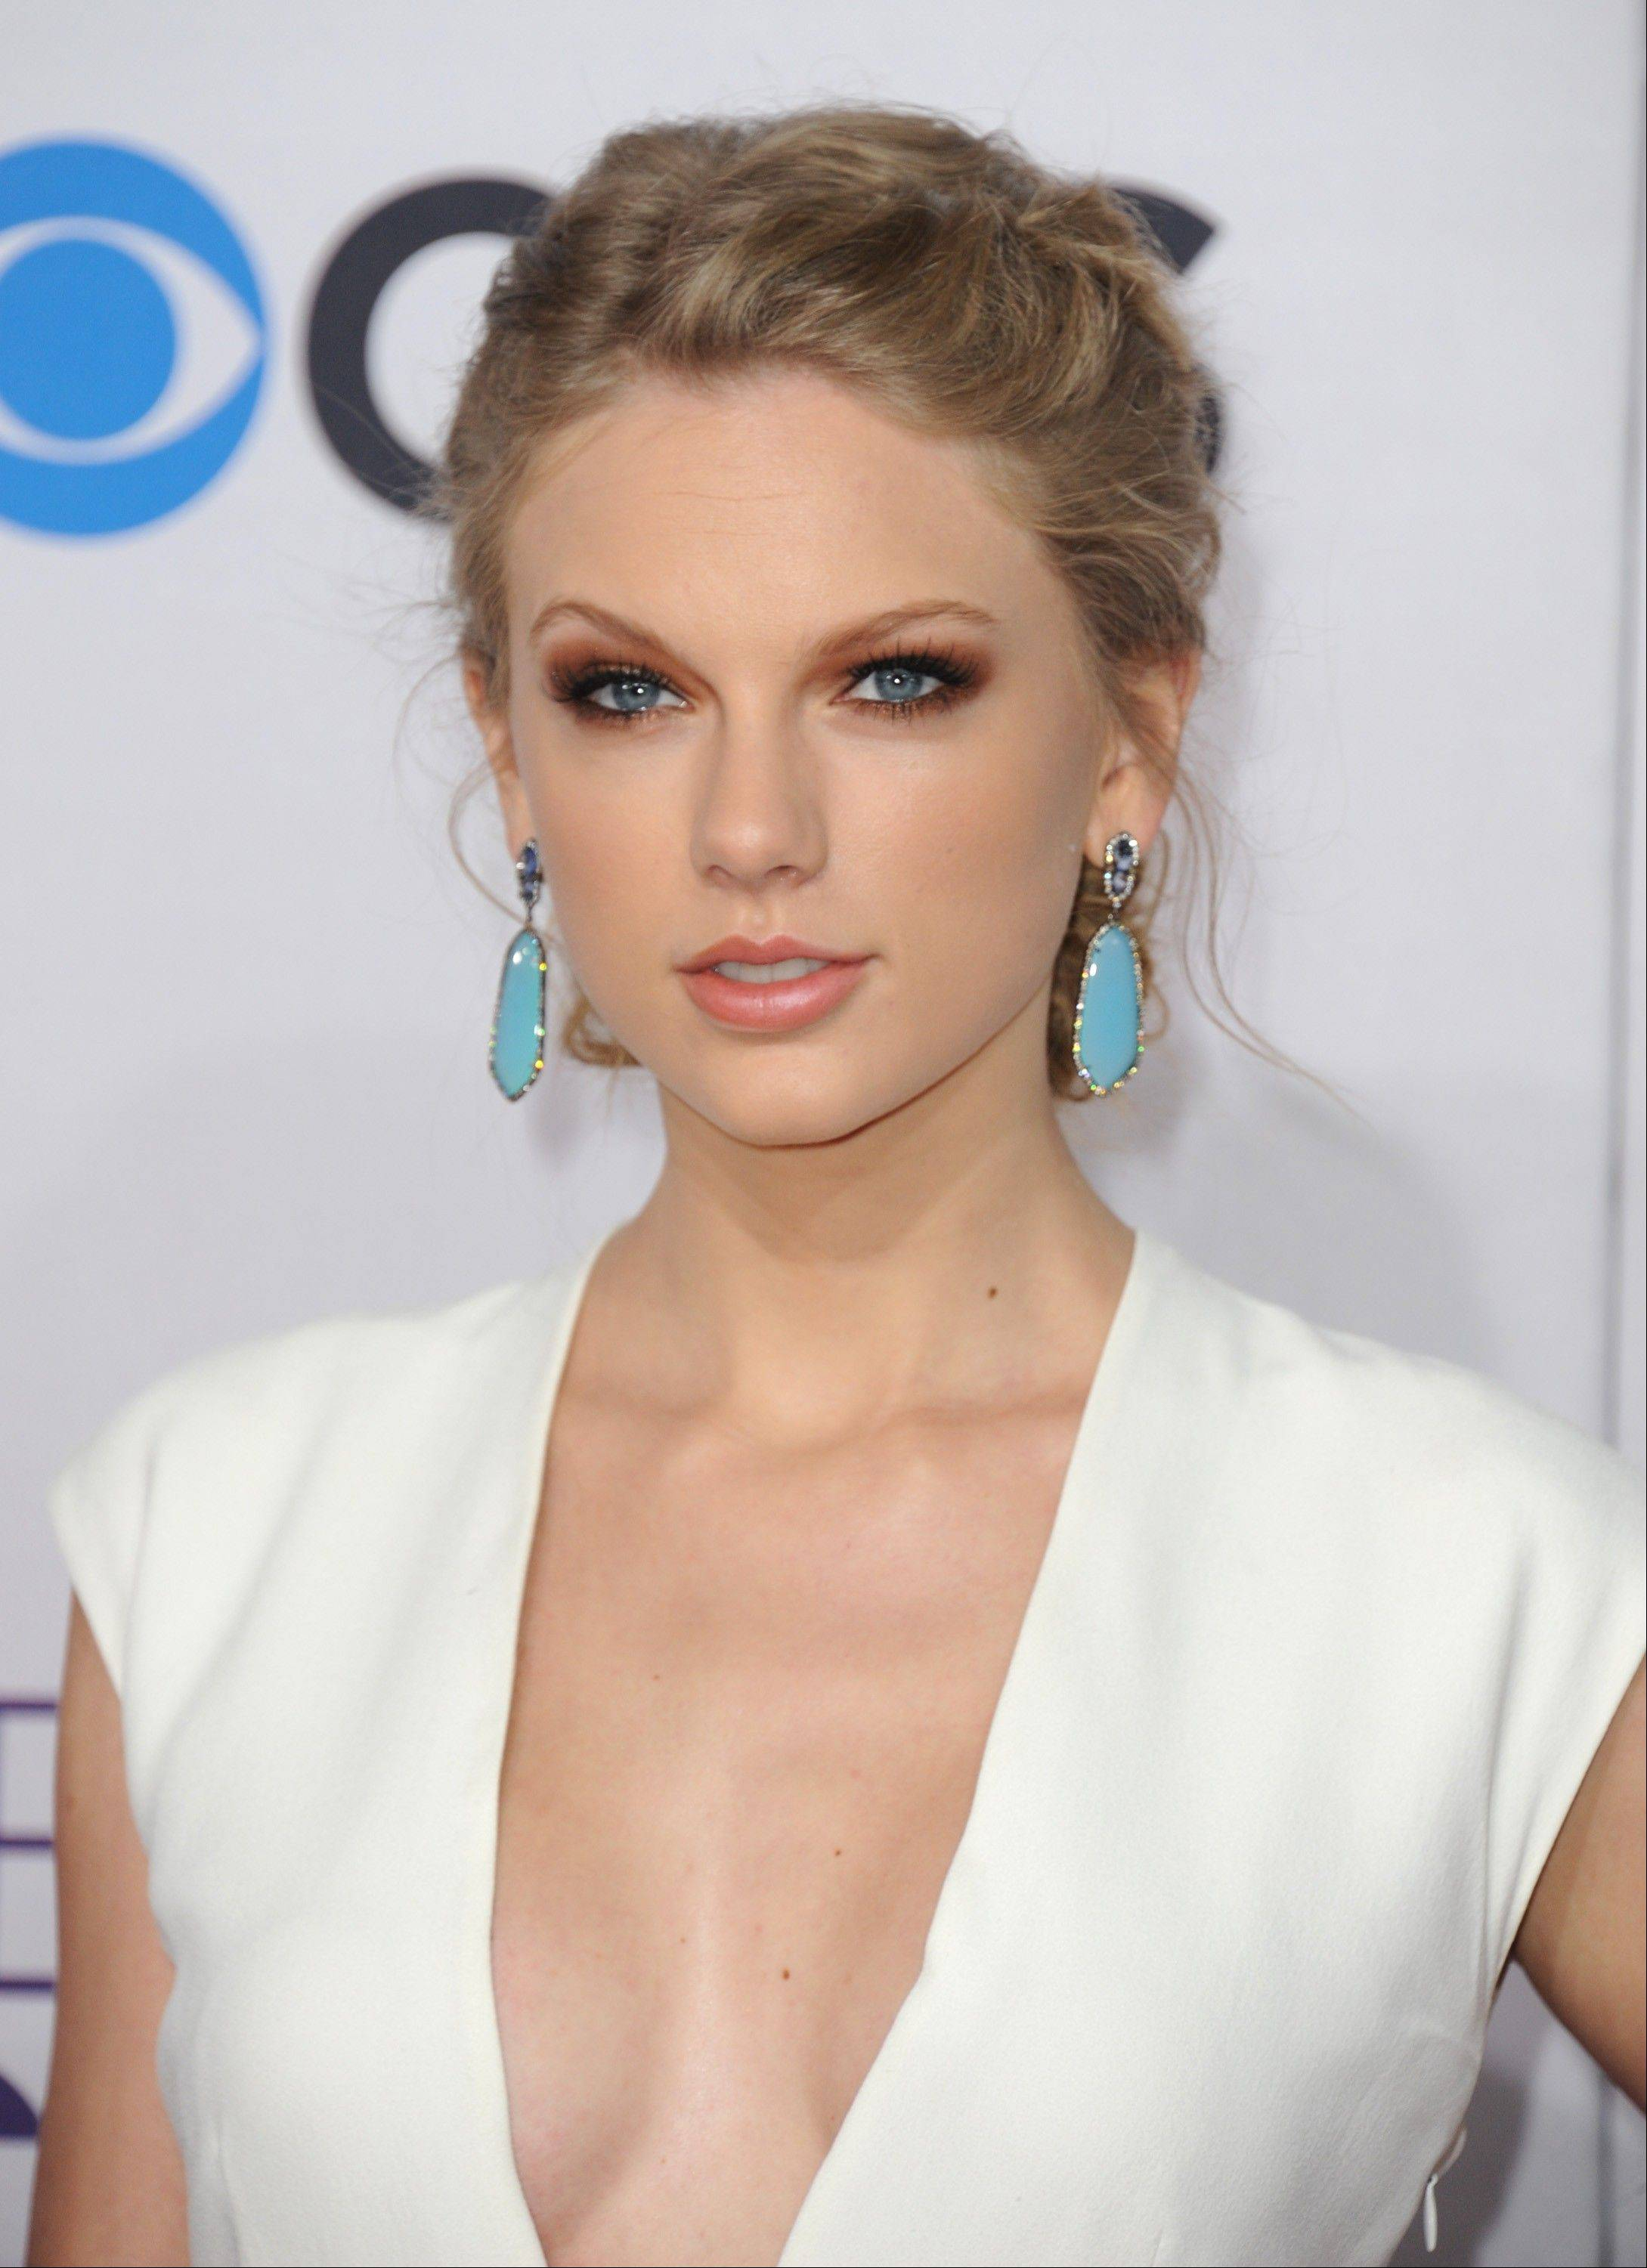 Taylor Swift arrives at the People's Choice Awards at the Nokia Theatre on Wednesday Jan. 9, 2013, in Los Angeles.